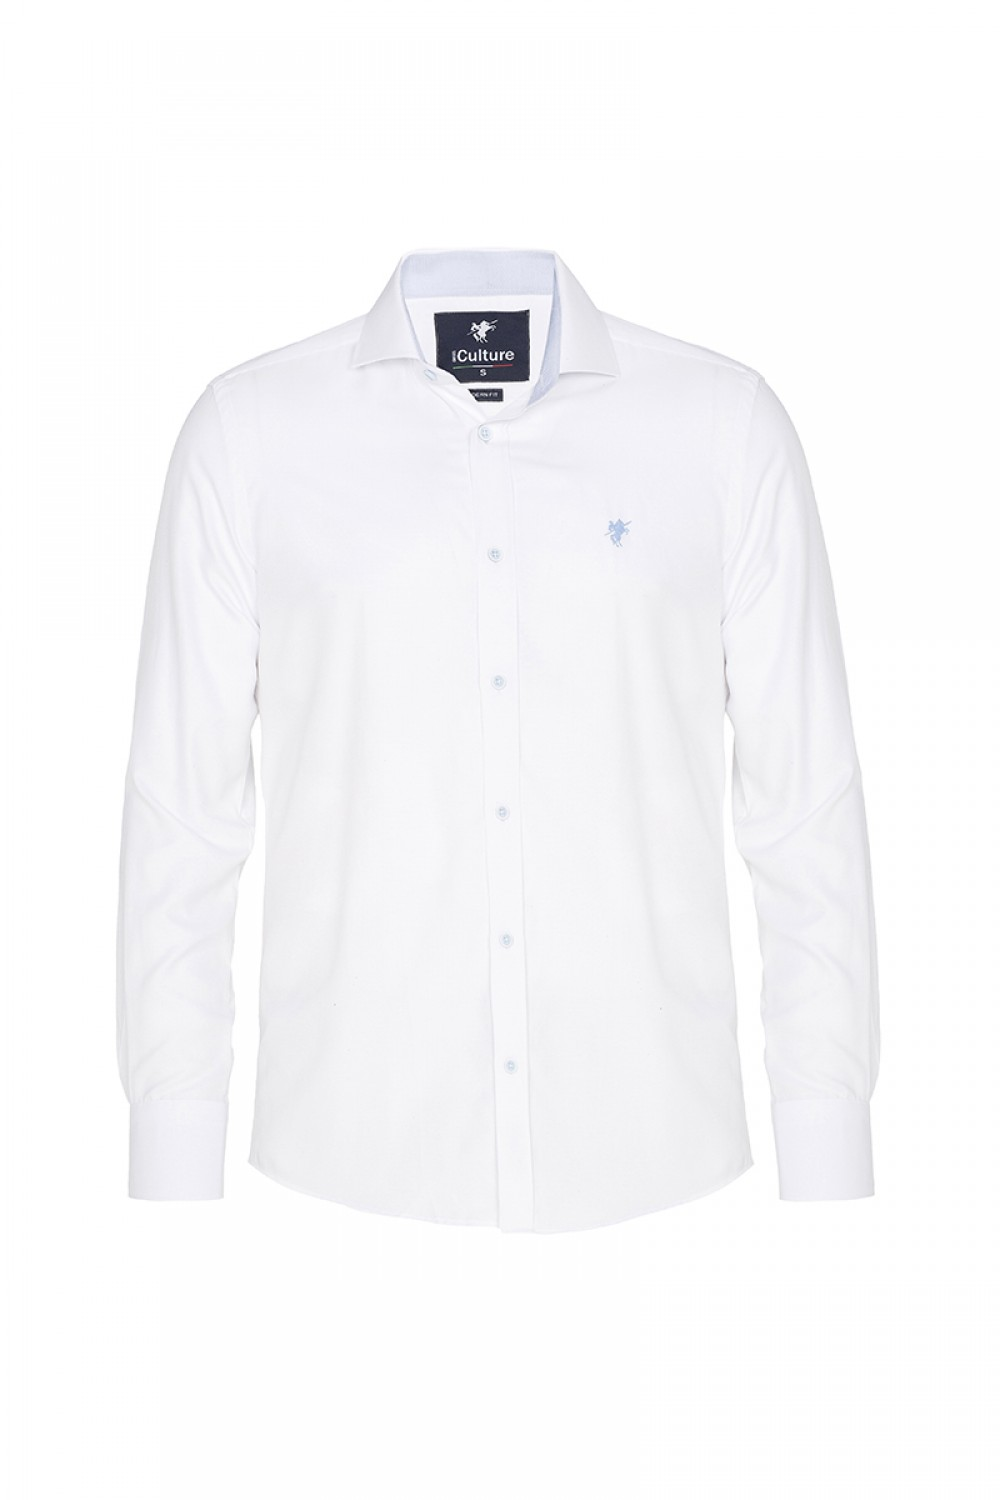 Men's Shirt Kent Collar White